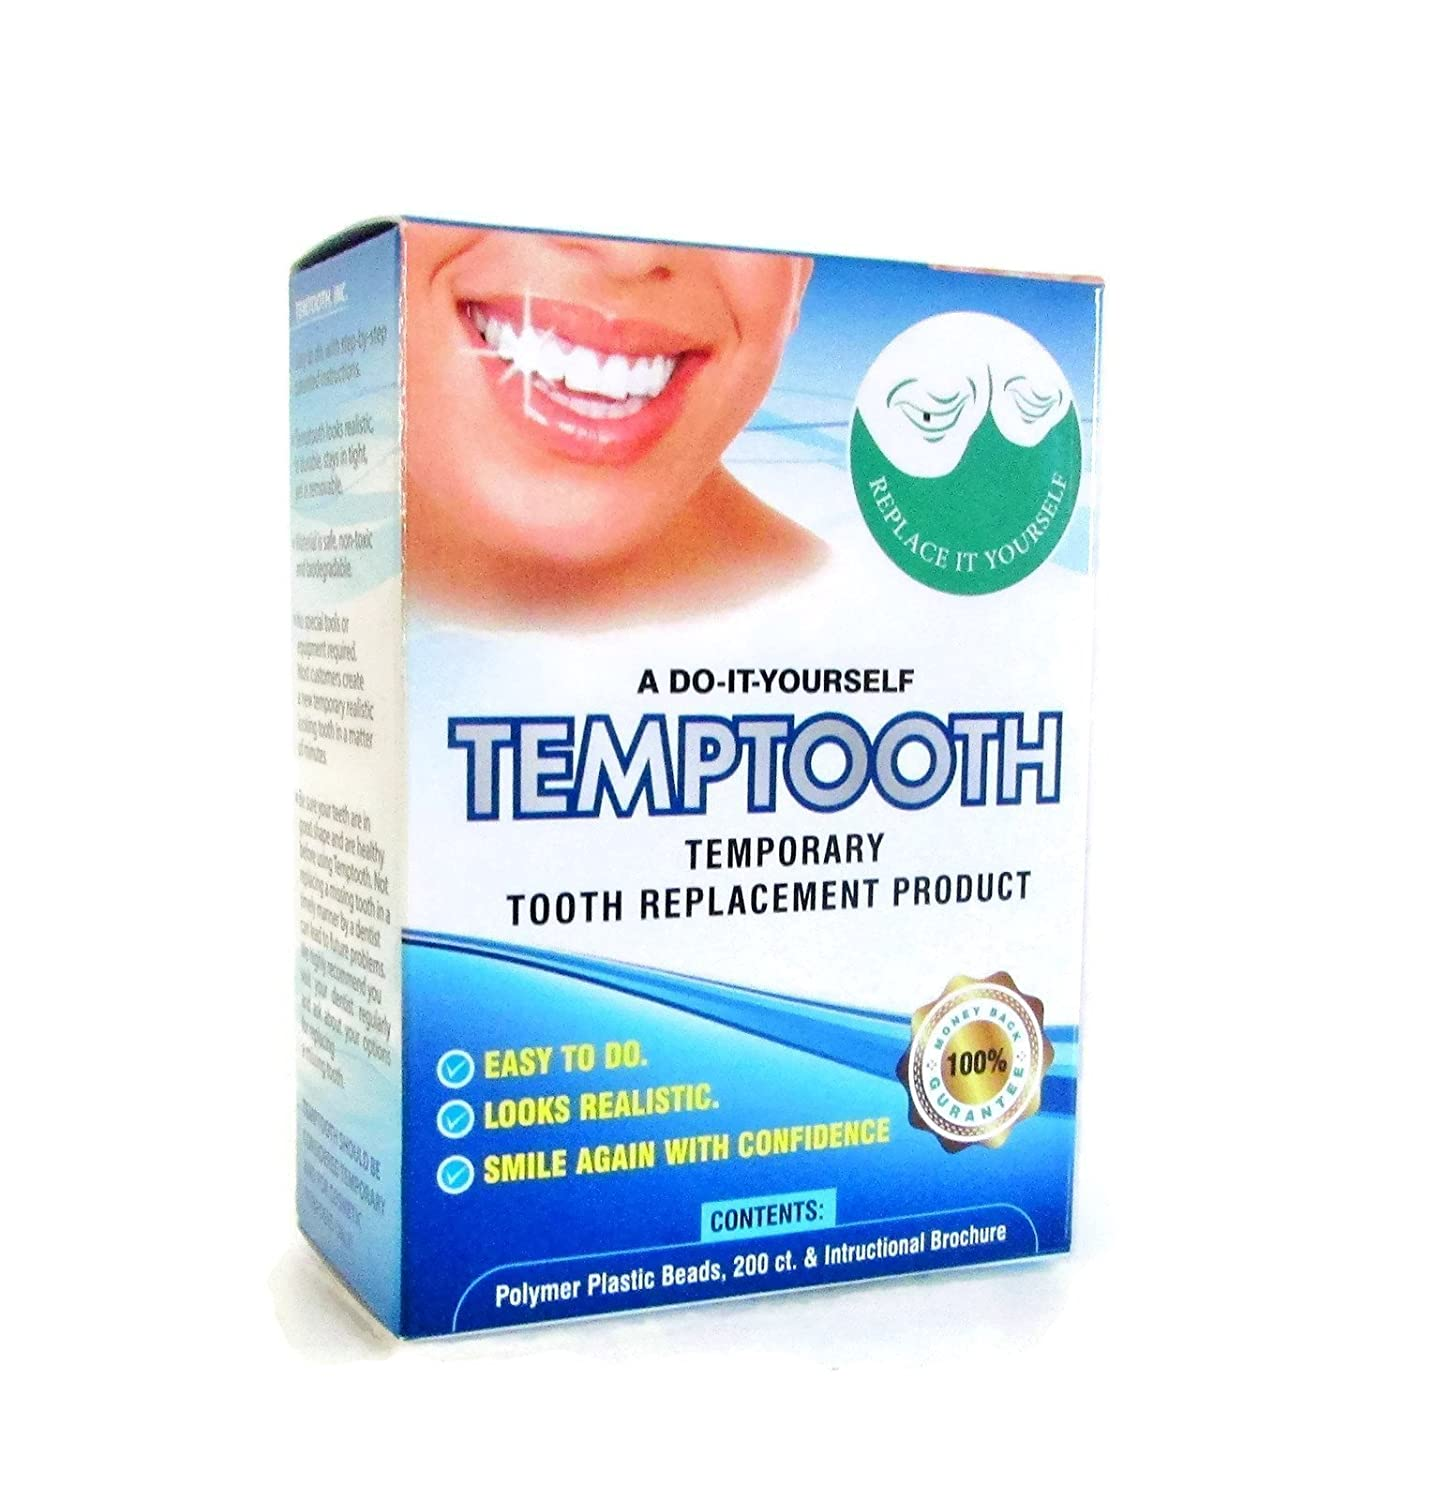 Temptooth diy replacement tooth kit amazon health temptooth diy replacement tooth kit amazon health personal care solutioingenieria Image collections